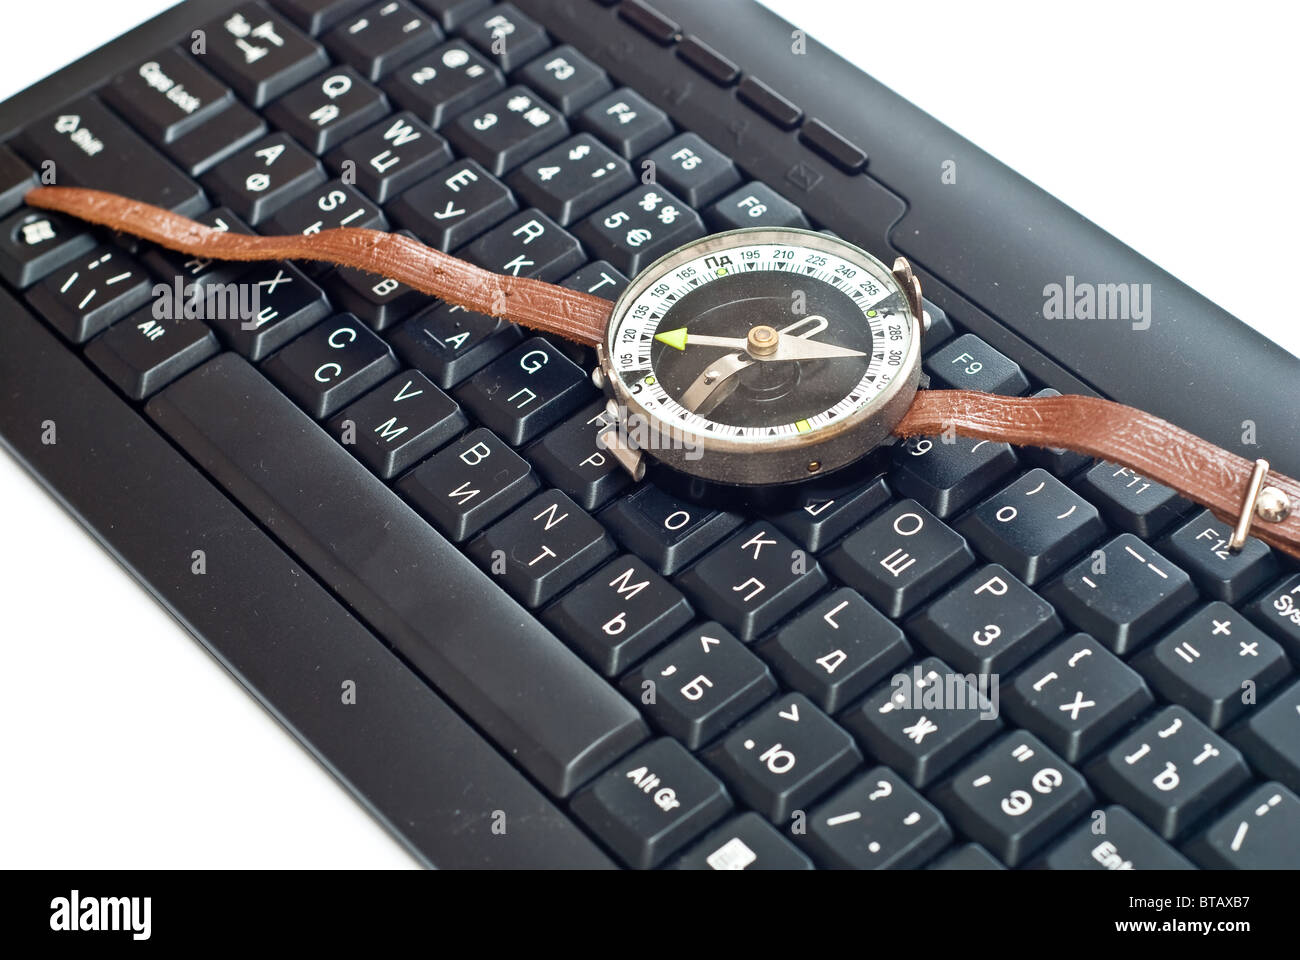 Compass on keyboard - Stock Image